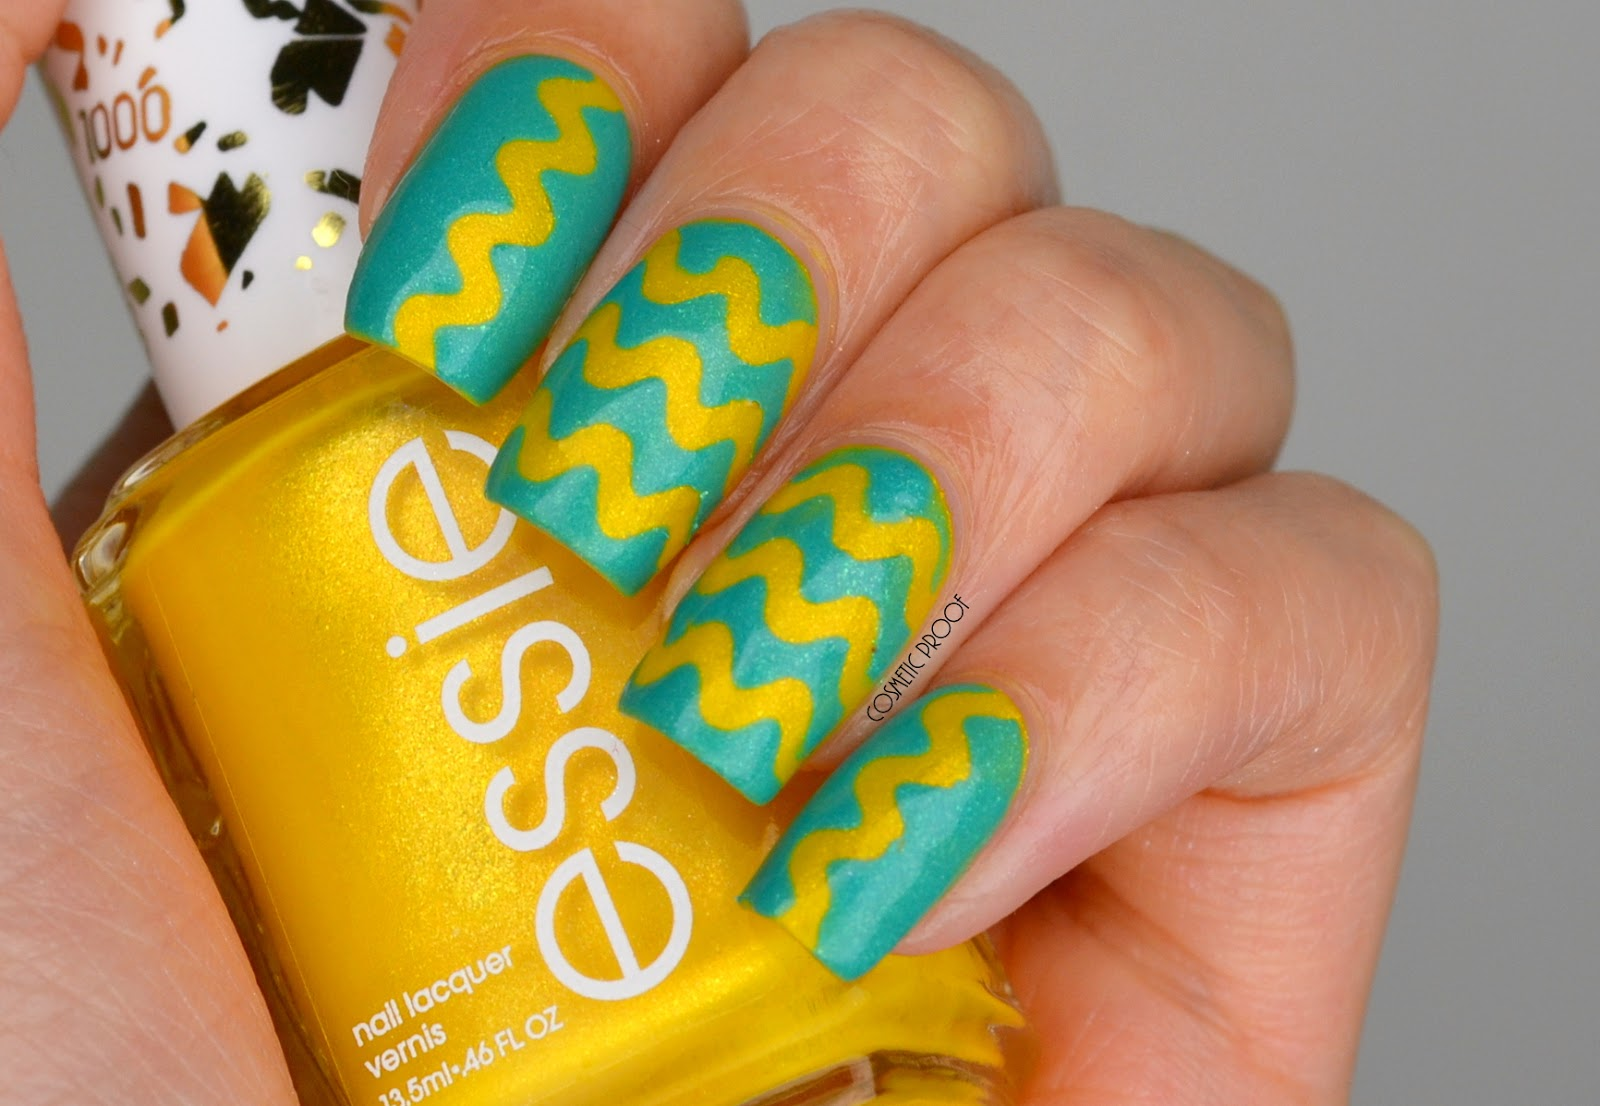 NAILS | (YELLOW) DAY 3 OF THE 31DC2016 WITH Wavy Taping #ManiMonday ...